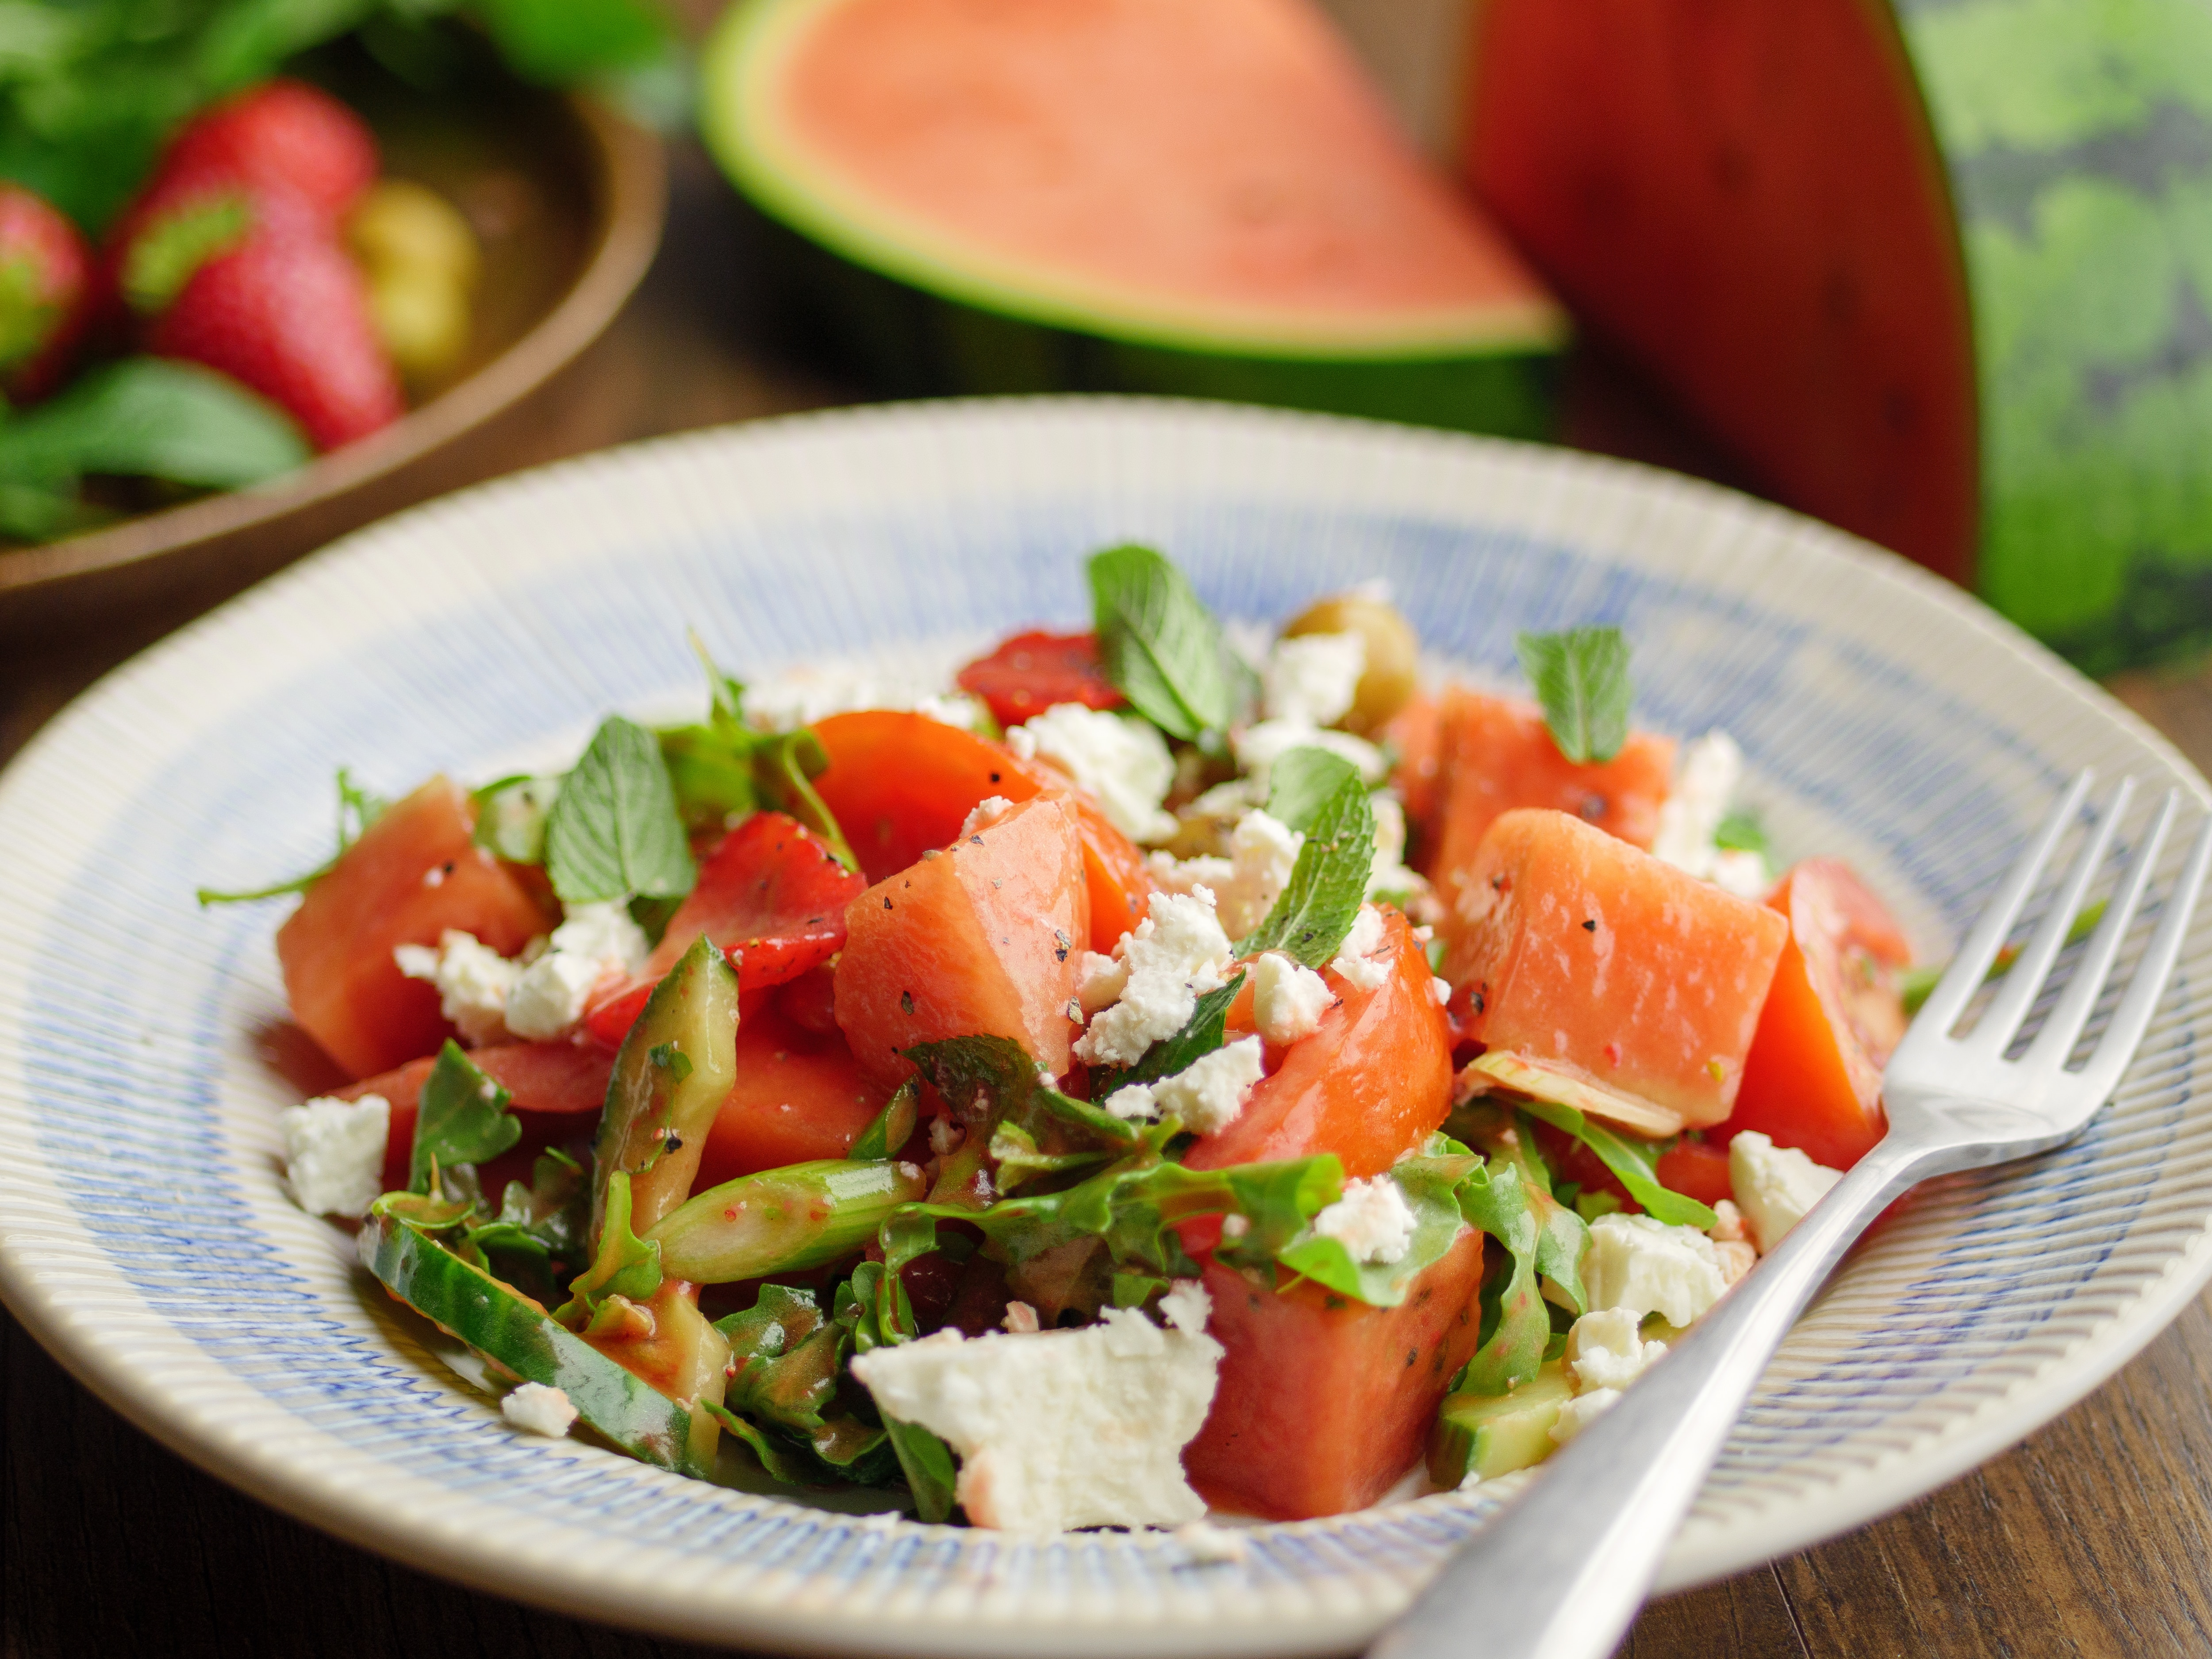 Watermelon And Strawberry Salad